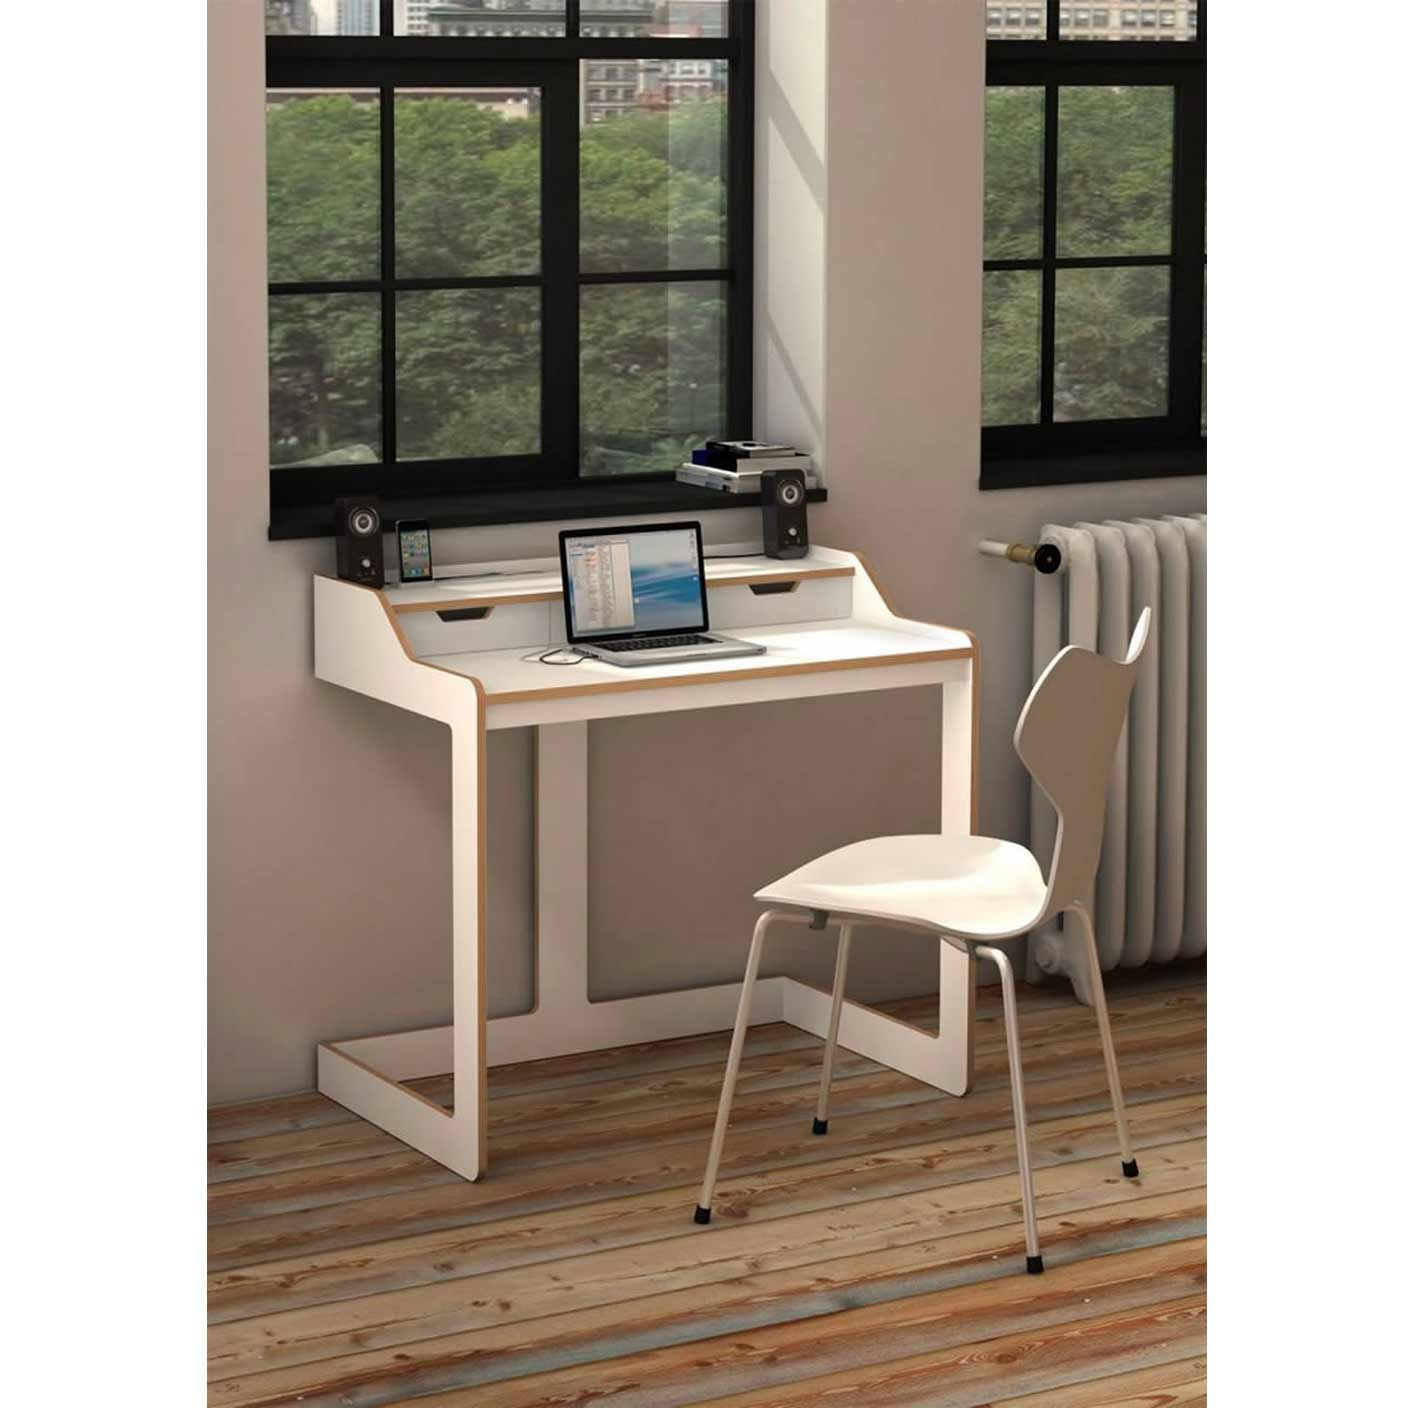 Small Desk for Laptop - Best Ergonomic Desk Chair Check more at http://www.gameintown.com/small-desk-for-laptop/